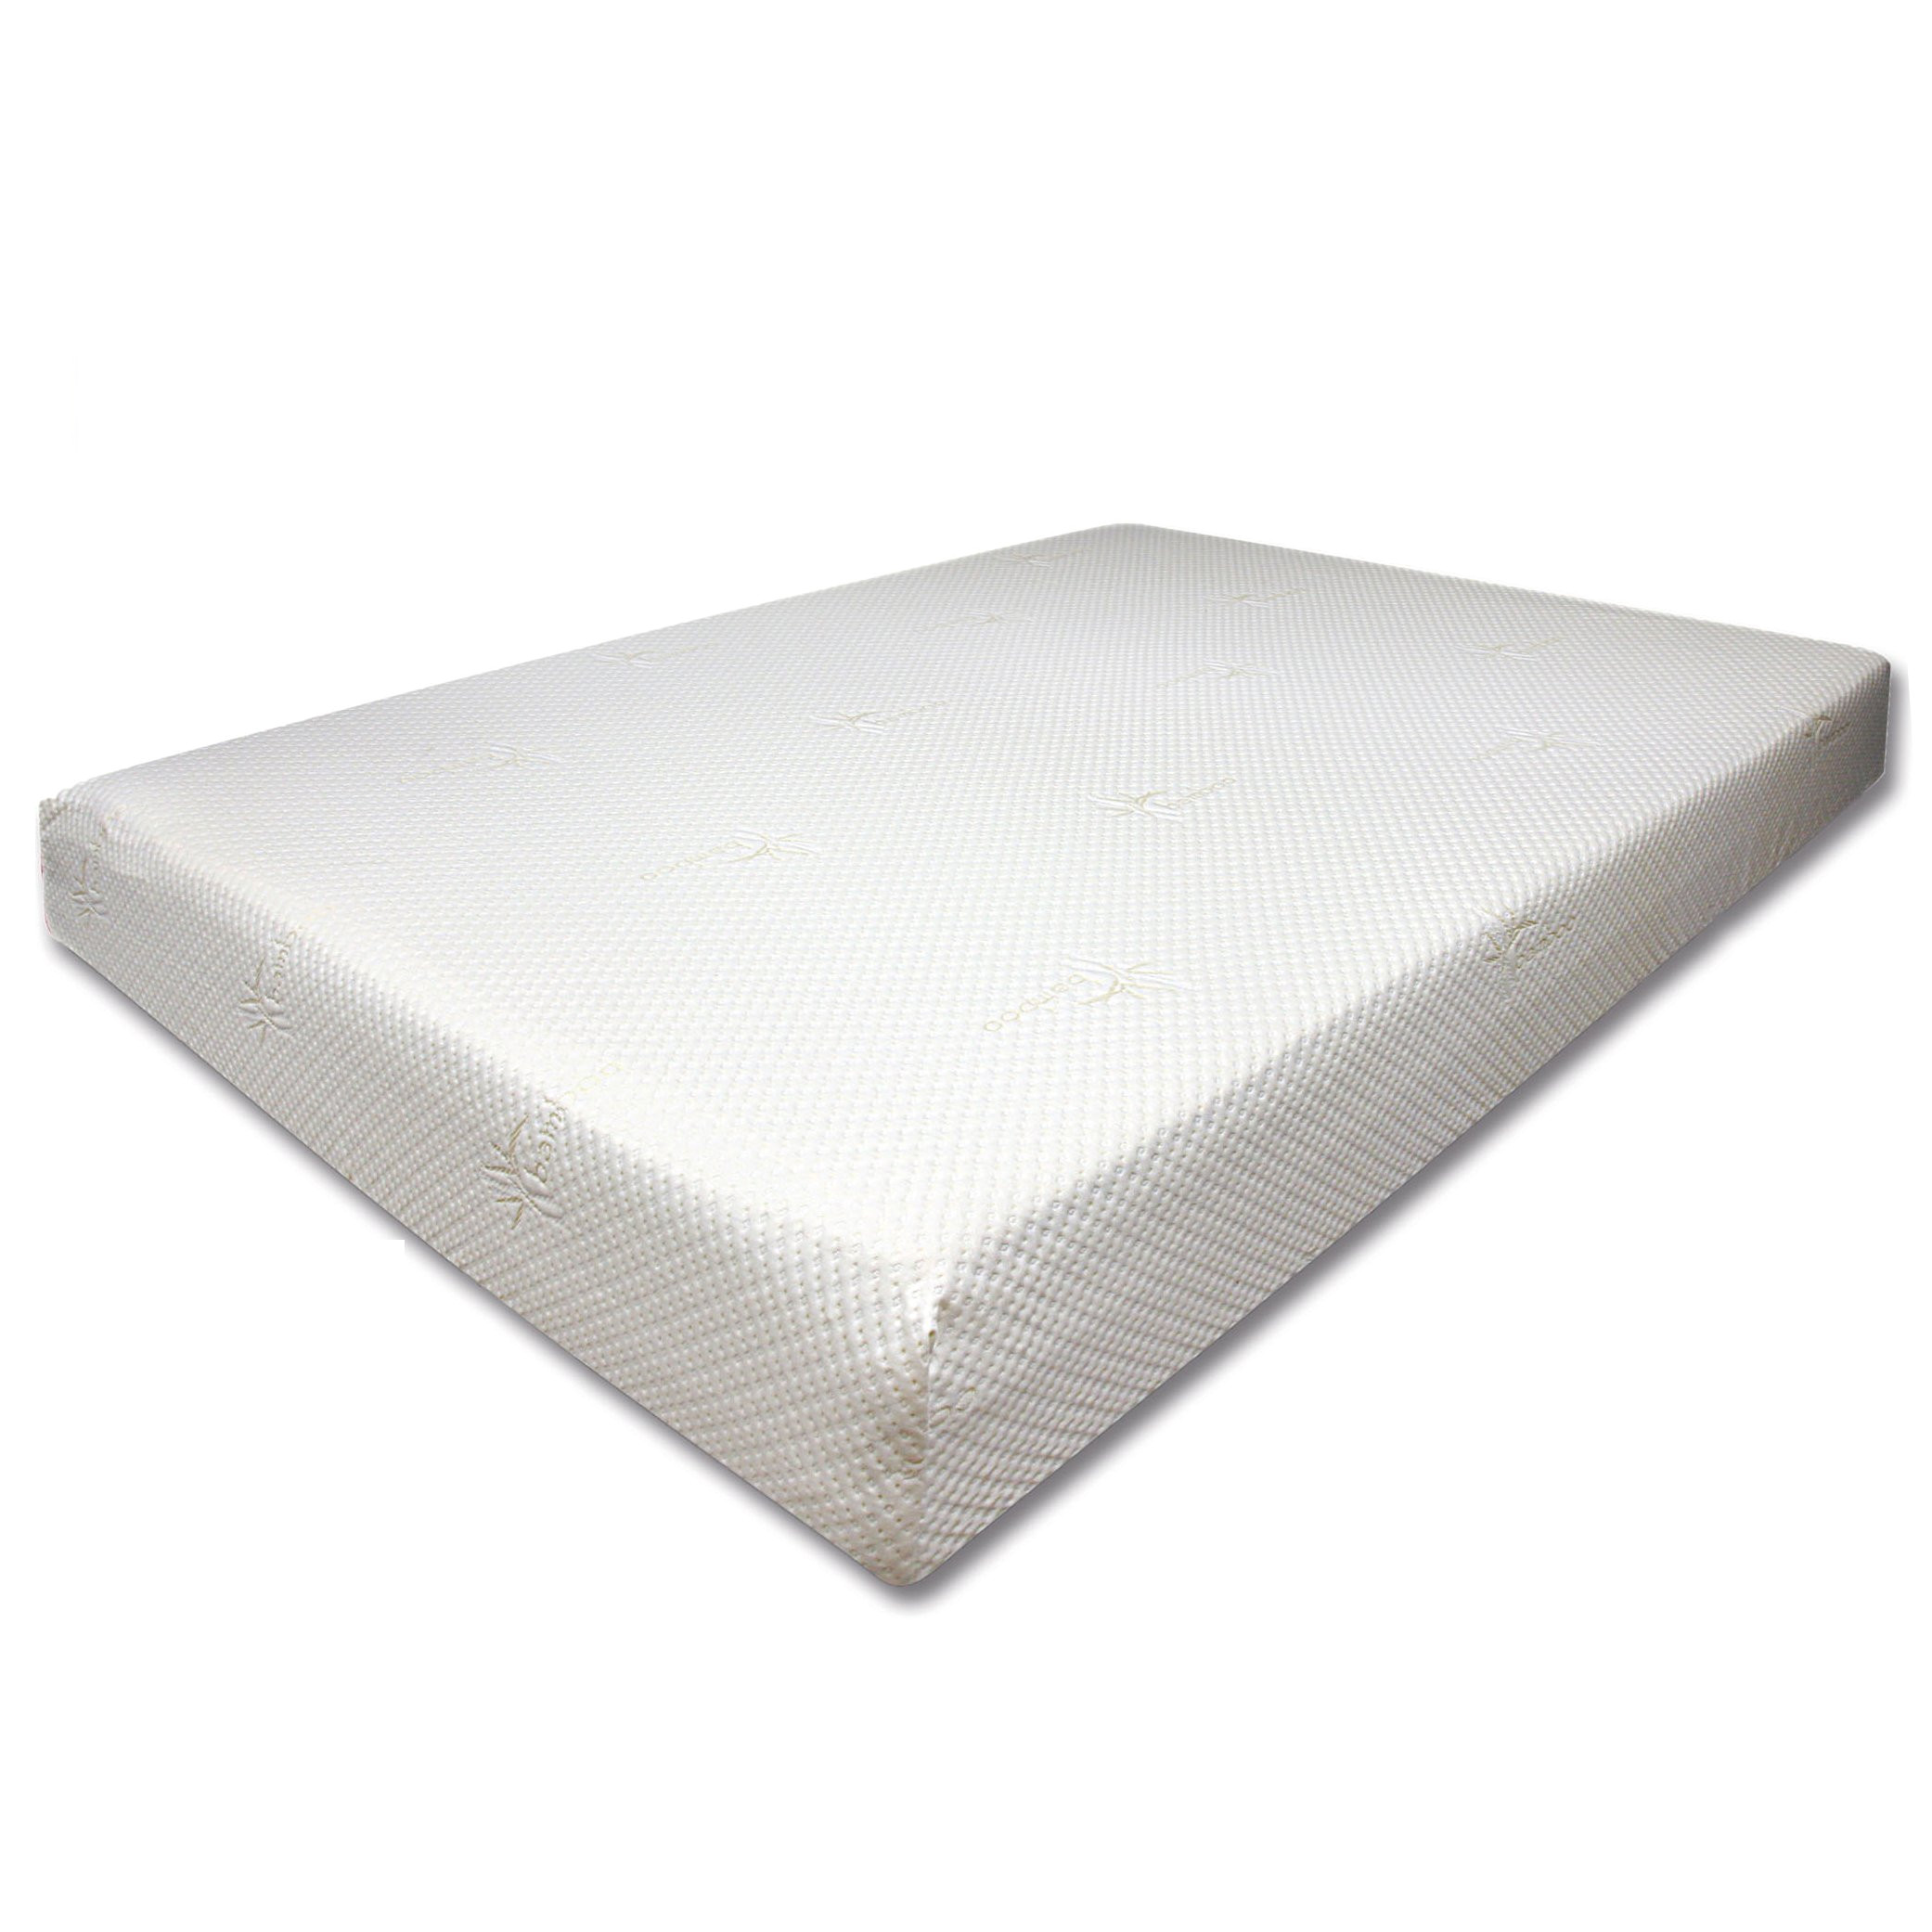 How Much Does A Full Size Memory Foam Mattress Weigh Shop Dreamax therapeutic High Density 10 Inch Full Size Memory Foam